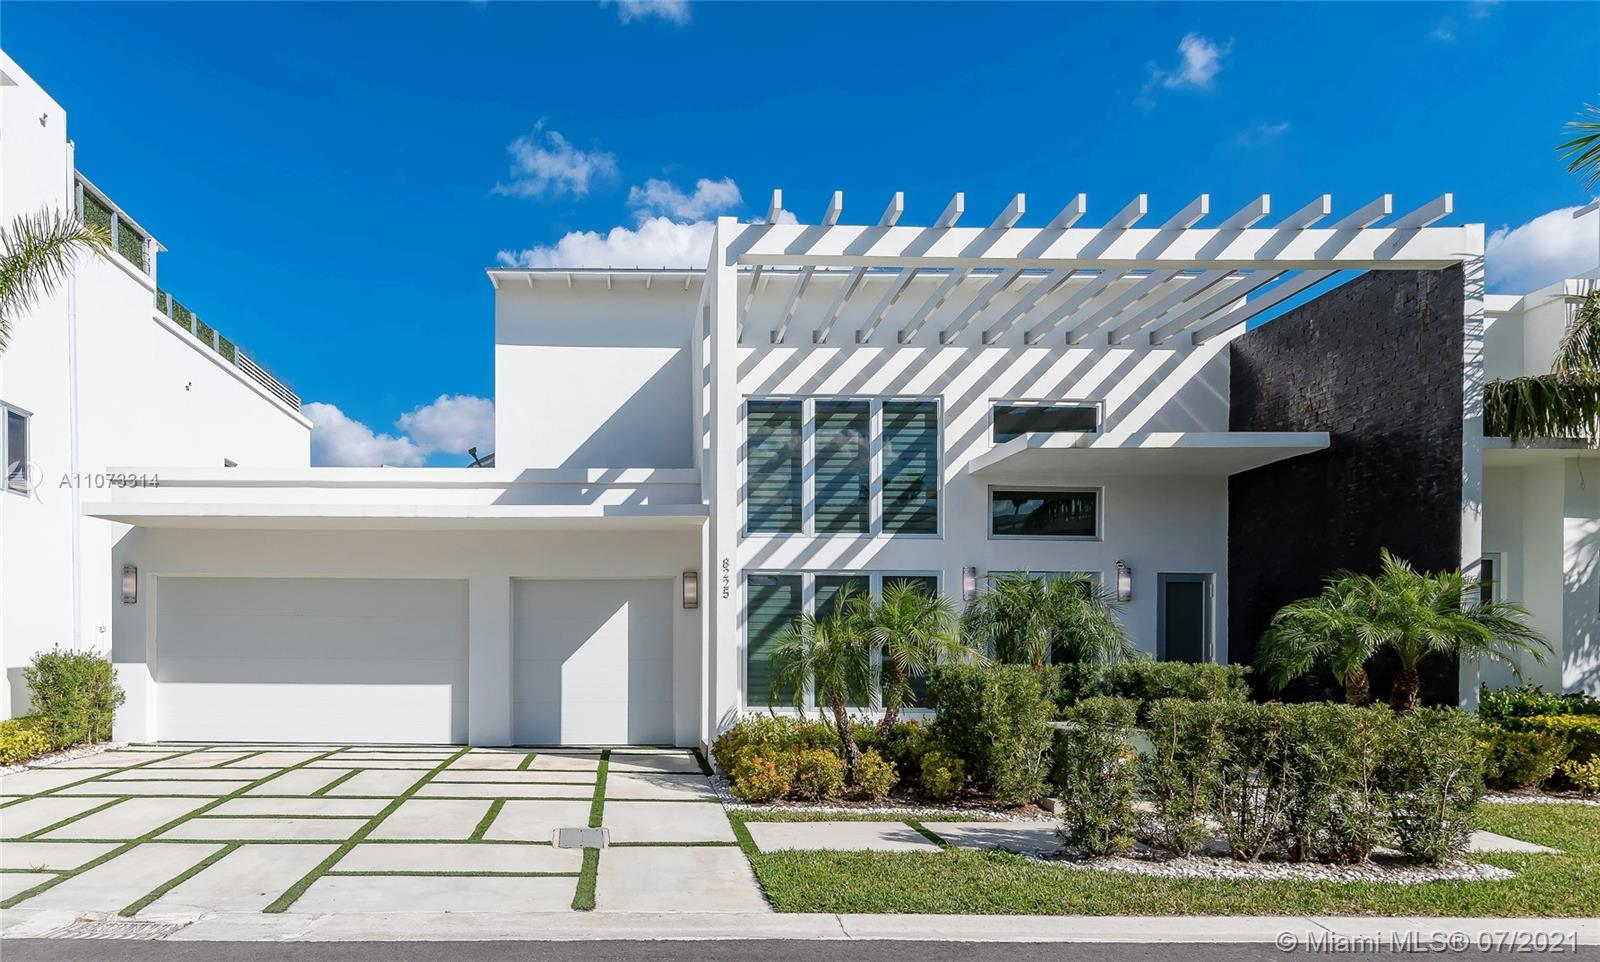 """Custom home in OASIS RESIDENCE Doral. Modern style, wide living spaces, contemporary details and state-of-the-art technology. The best floor plan in the neighborhood featuring: high ceilings, Oversized Master Bedroom, Italian wood cabinetry, marble floors, outdoor kitchen, glass wine cedar & delivered """"Smart Home"""" ready. Luxury gated community next to Doral City Place with fine dining, shopping and more. TENANT OCCUPIED UNTIL SEPTEMBER 1st."""